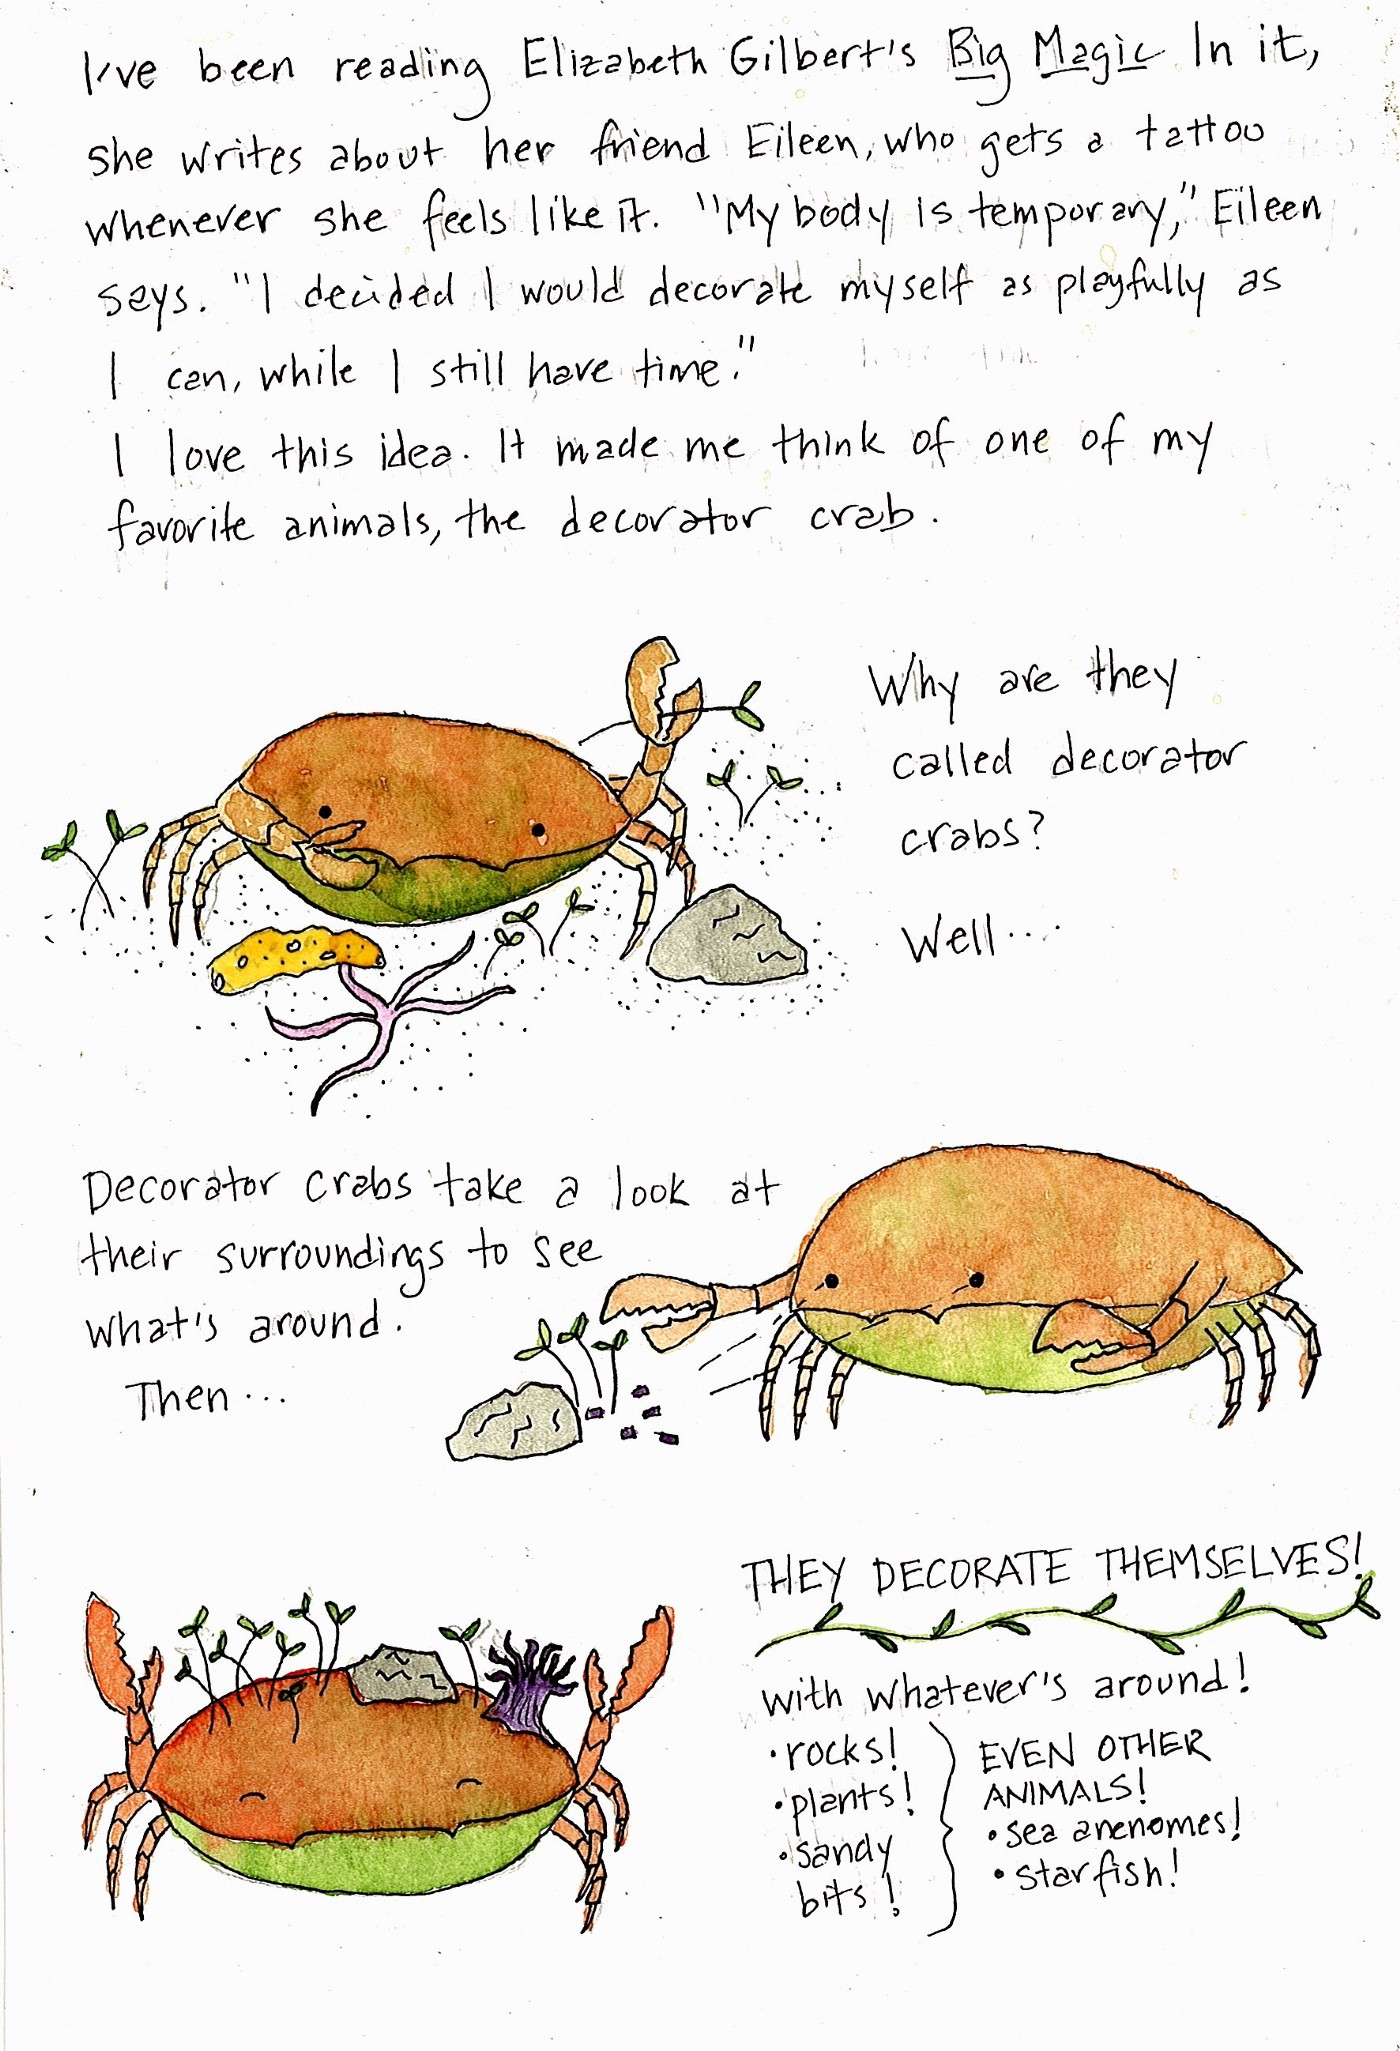 handwritten script with three watercolors of cartoon crabs. In the first, a crab sits on a sandy bottom with a sprig of something green in his claw. He is surrounded by a rock, a brittle star, a sponge, and some other green. The second crab sees a rock and some greens. The third has decorated himself with a rock, a sea anemone, and some green sprigs. Full text below images.